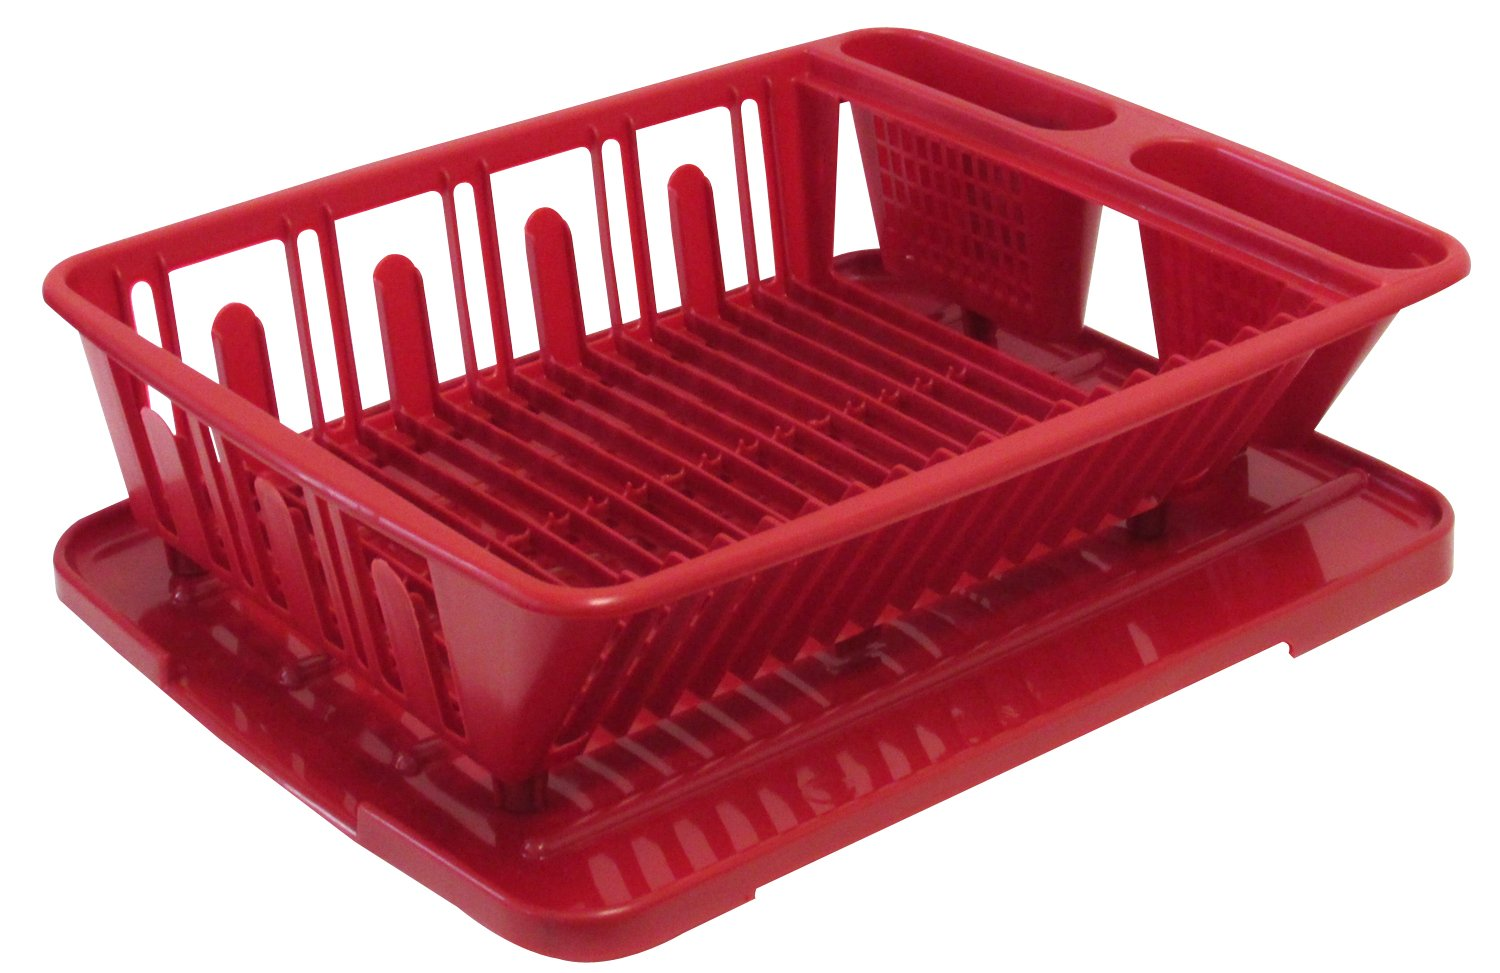 United Solutions SK0030 Two Piece Dish Rack and Drain Board Set in Red-2 Piece Large Sink Set Includes Dish Drainer and Drain board with Room for 14 Plates, 7 Small Plates/Bowls, and 8 Cups/Glasses plus Flatware by United Solutions